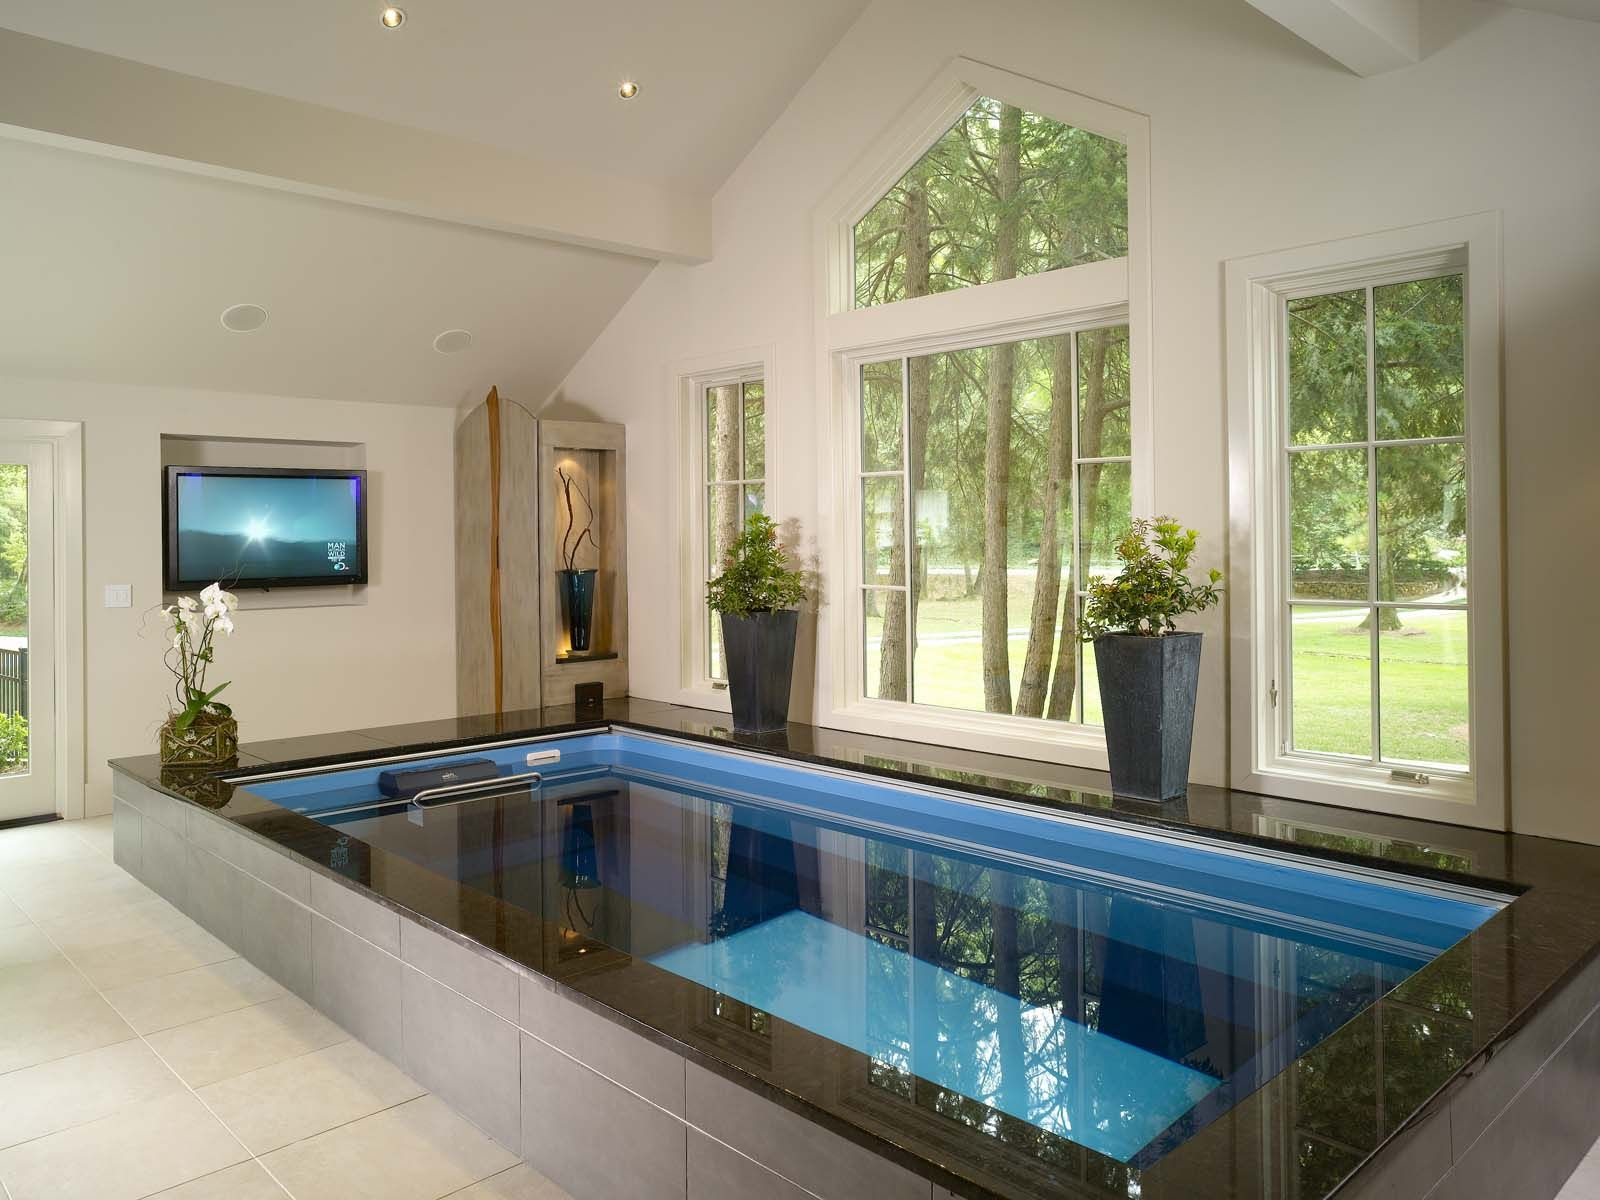 Pool Beautiful Design Indoor Pool House White Color Dominant